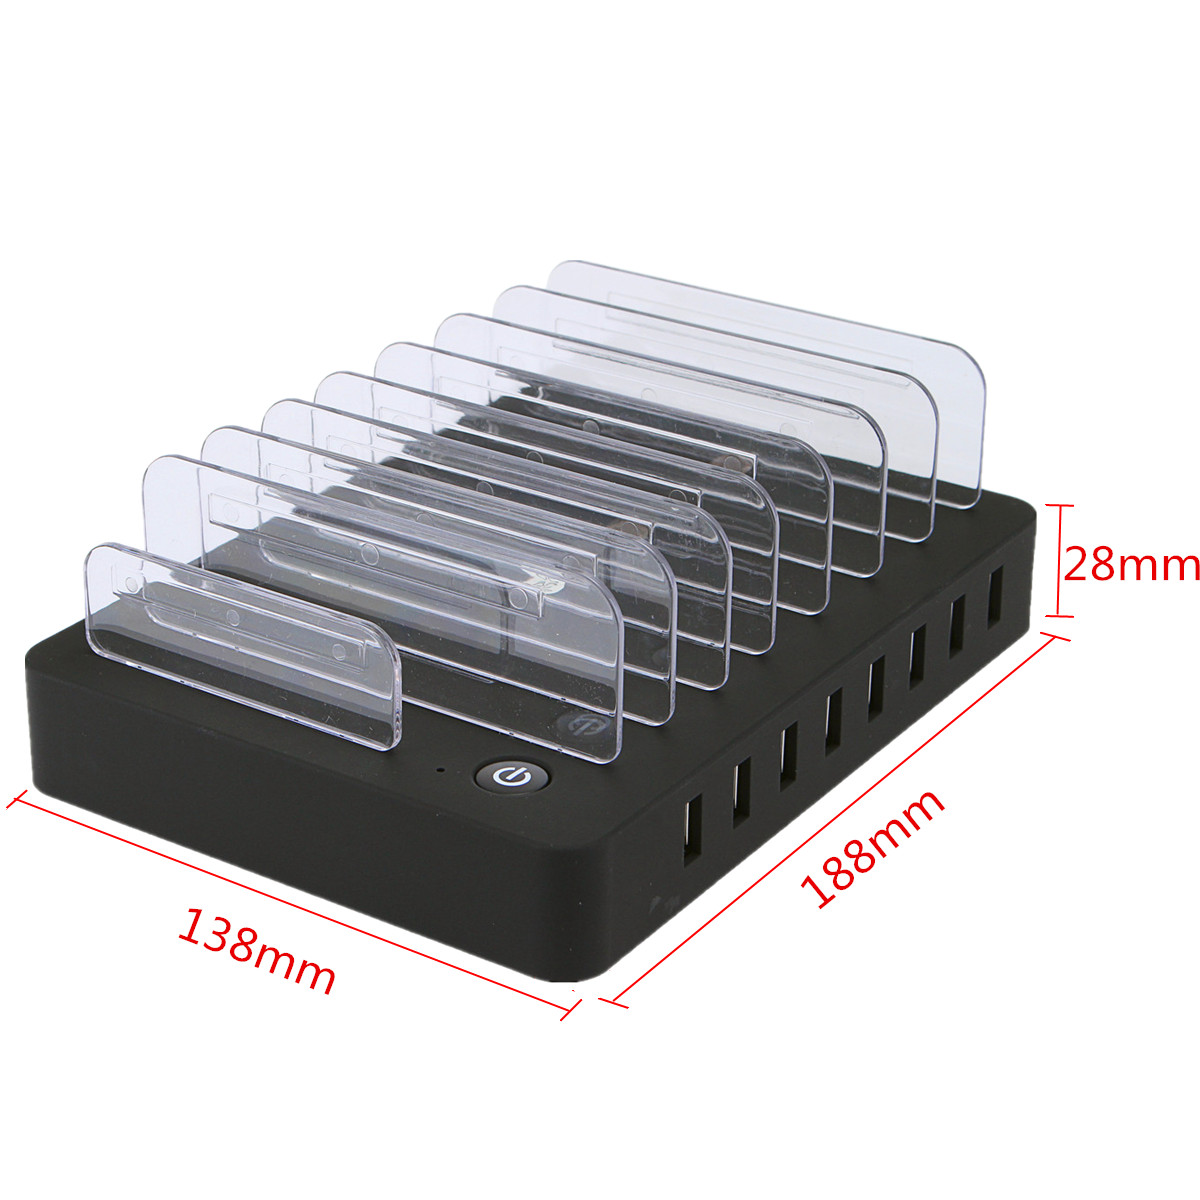 8 Port USB Multi-Function Wall Charging Station Stand for Mobile Phone